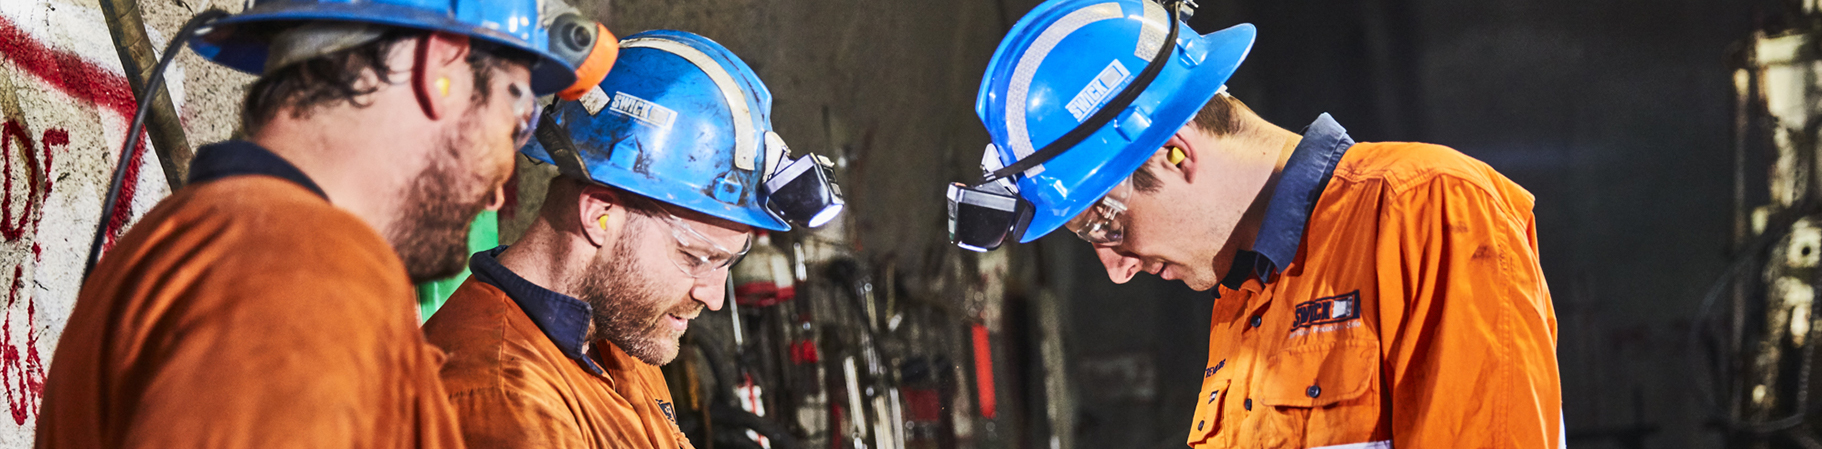 Becoming a driller – Swick Mining Services